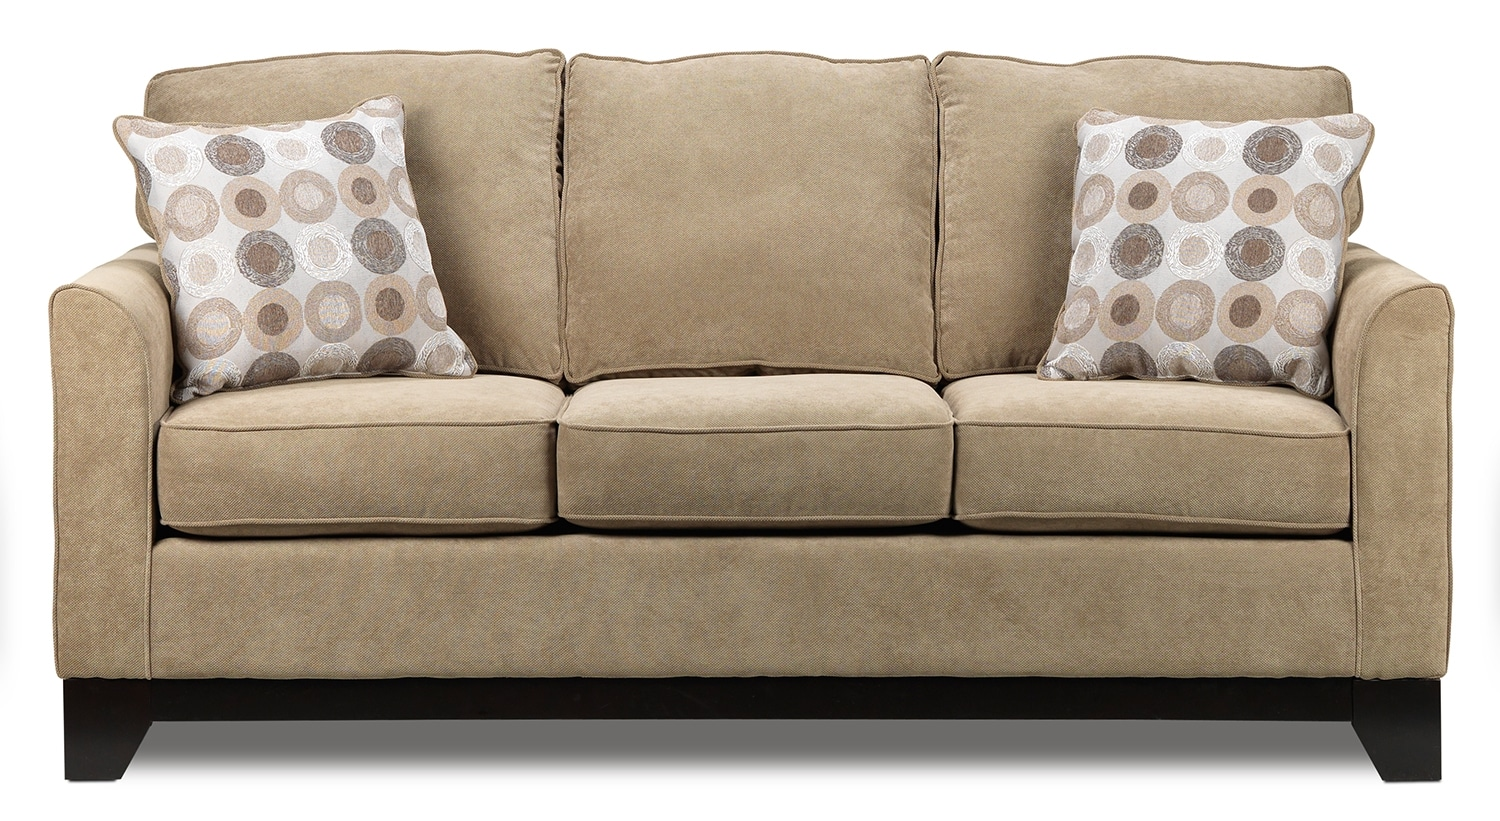 Sand castle sofa light brown leon 39 s - Furniture picture ...